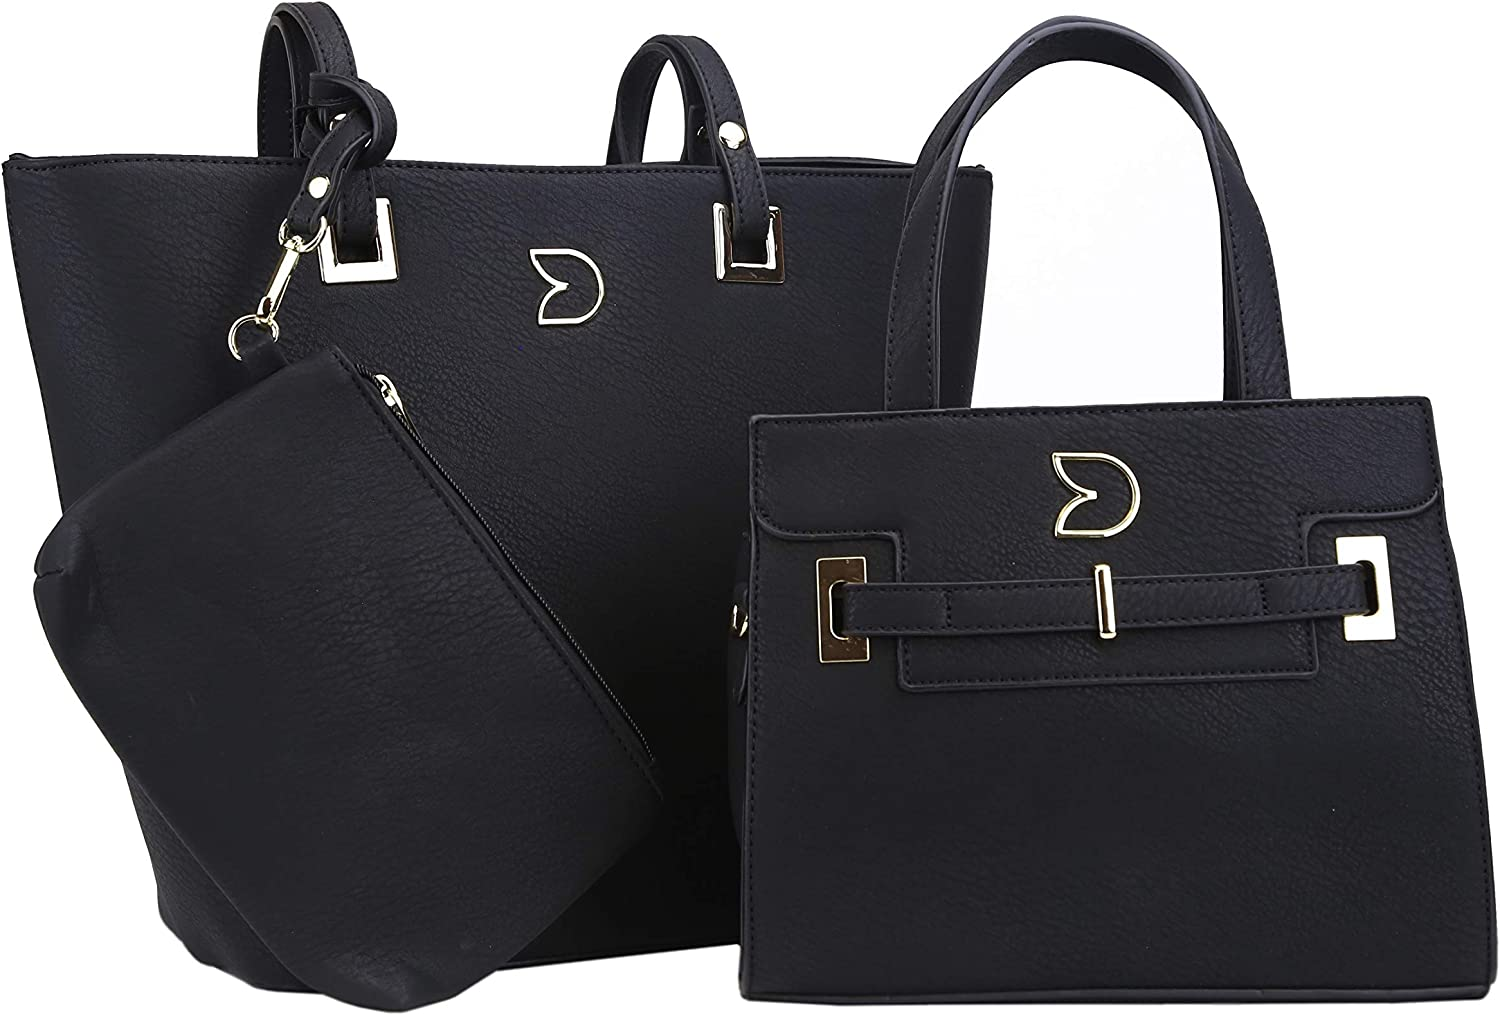 Darling's Classic Faux Leather Designer Carryall Tote - 3 Piece Shoulder Crossbody Clutch Bag Set - Large, Medium & Small